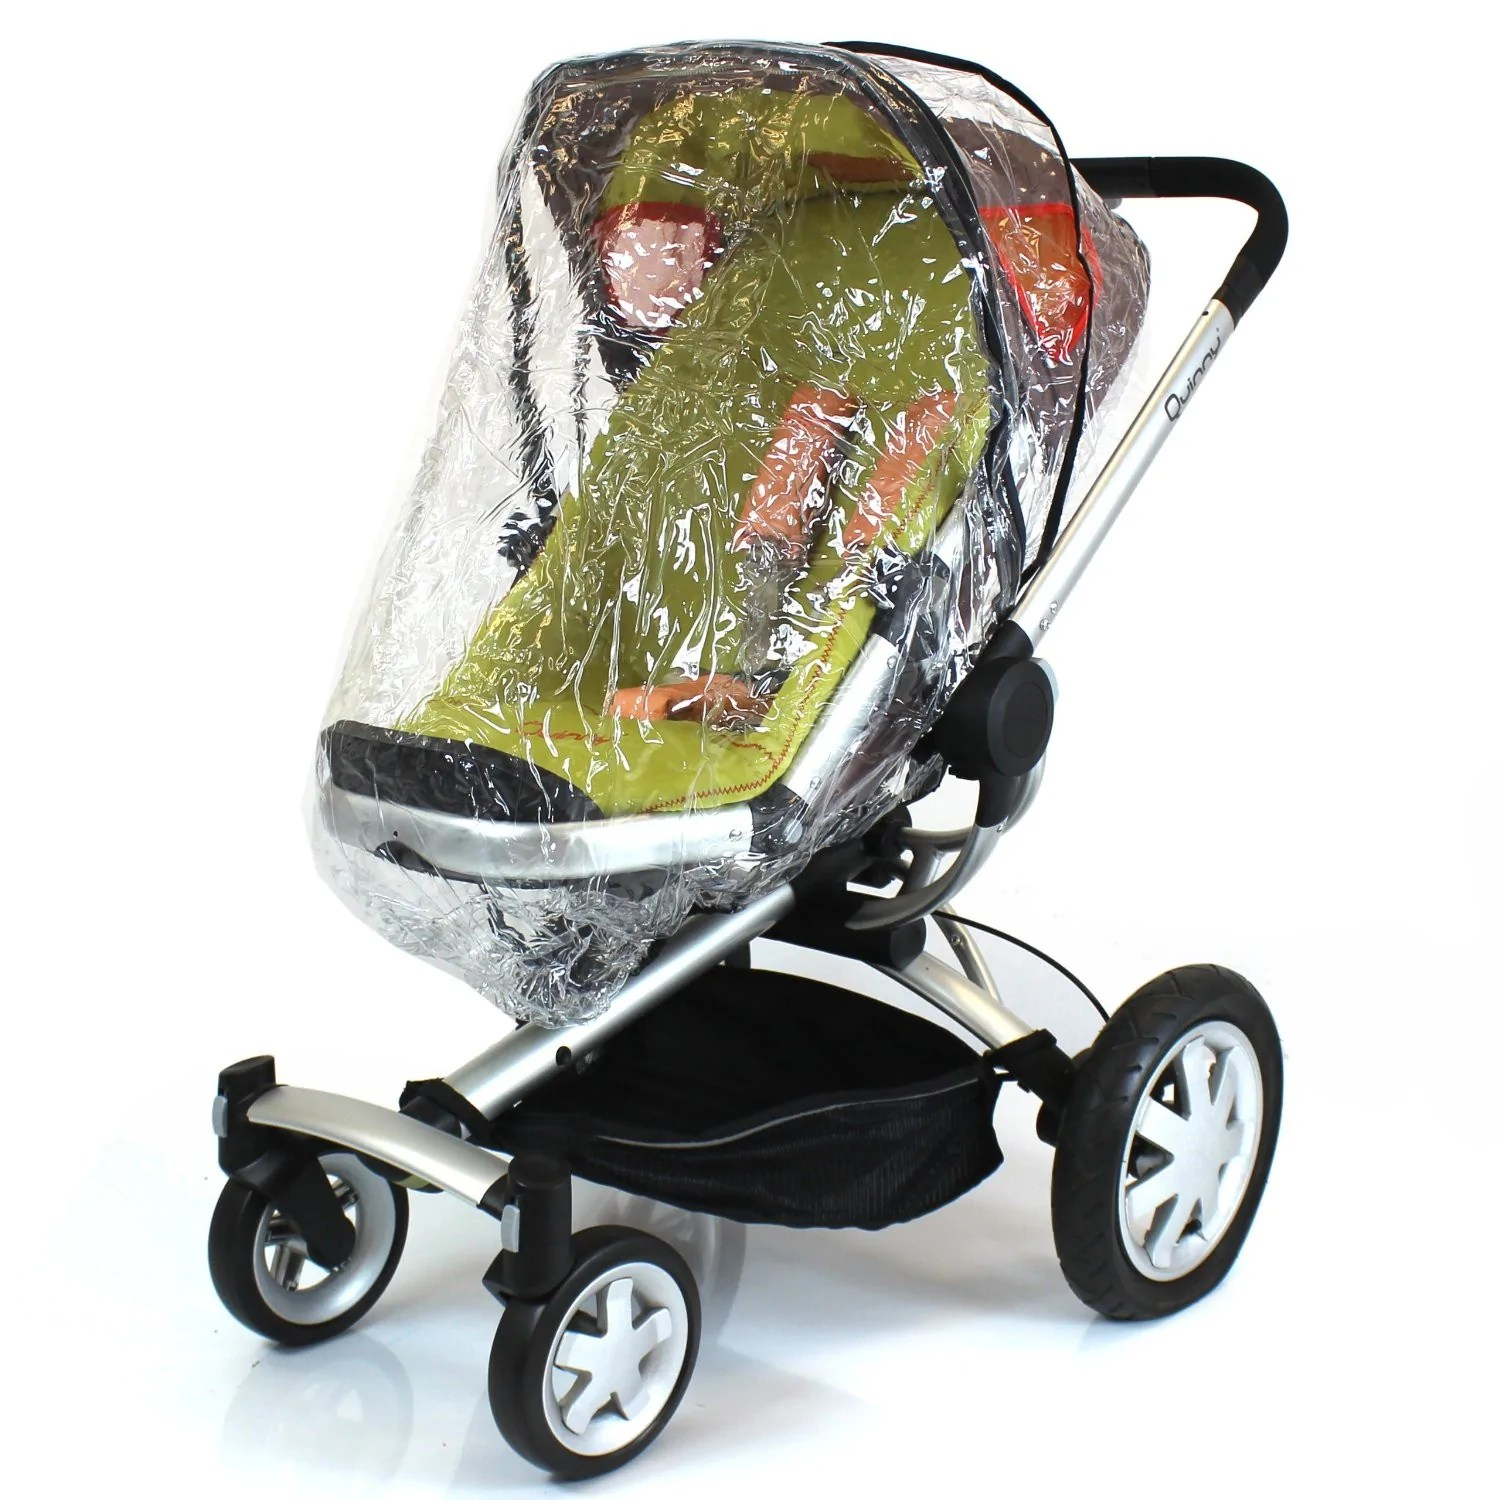 Zobo Travel System Weather Shield Duallie Weather Shield Swivel Wheel Aliexpresscom Buy